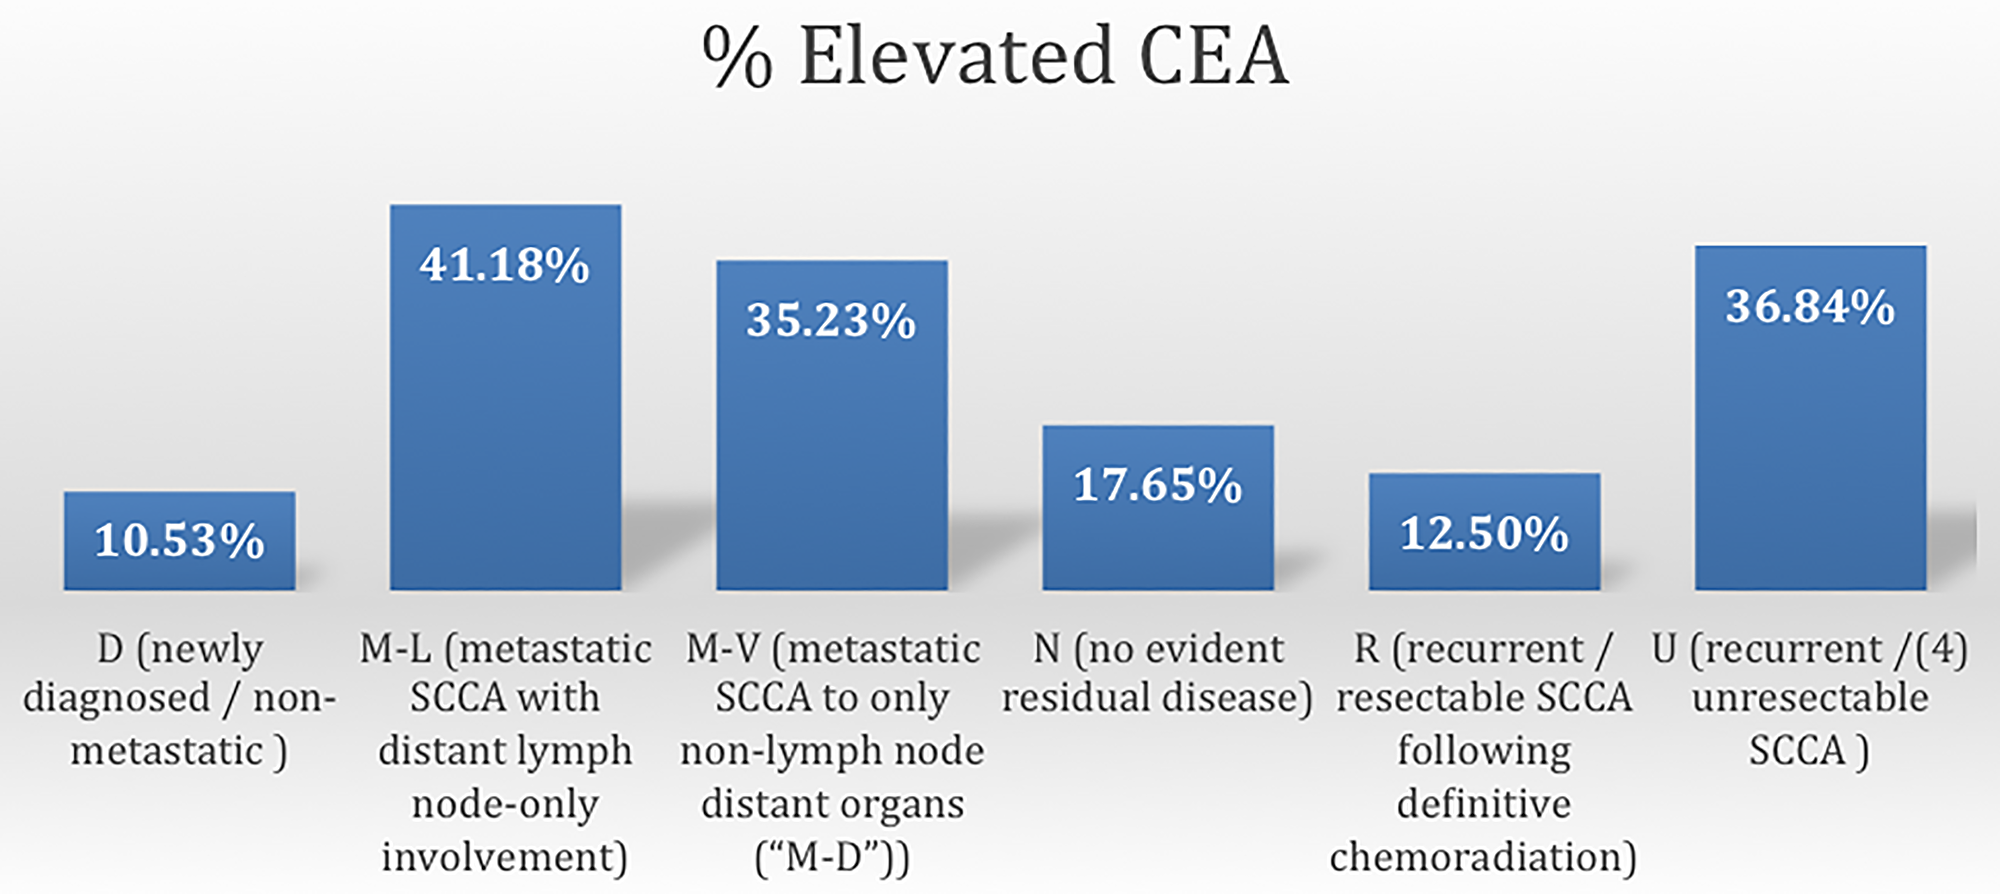 Frequency of elevated CEA according to disease status of SCCA.